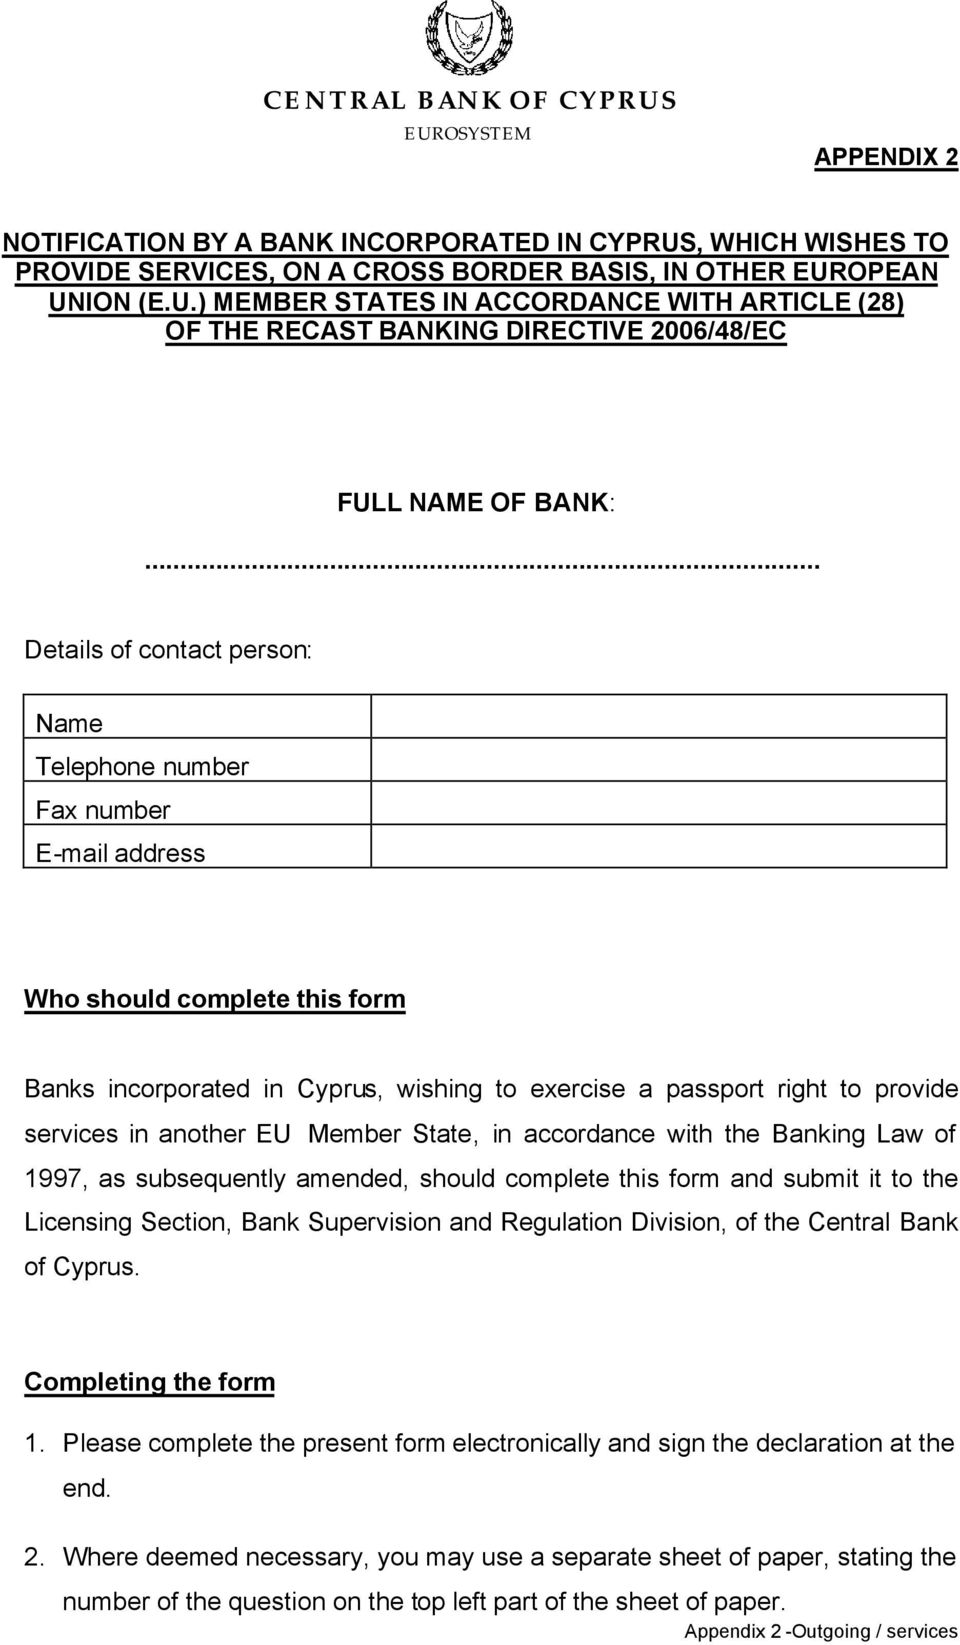 another EU Member State, in accordance with the Banking Law of 1997, as subsequently amended, should complete this form and submit it to the Licensing Section, Bank Supervision and Regulation